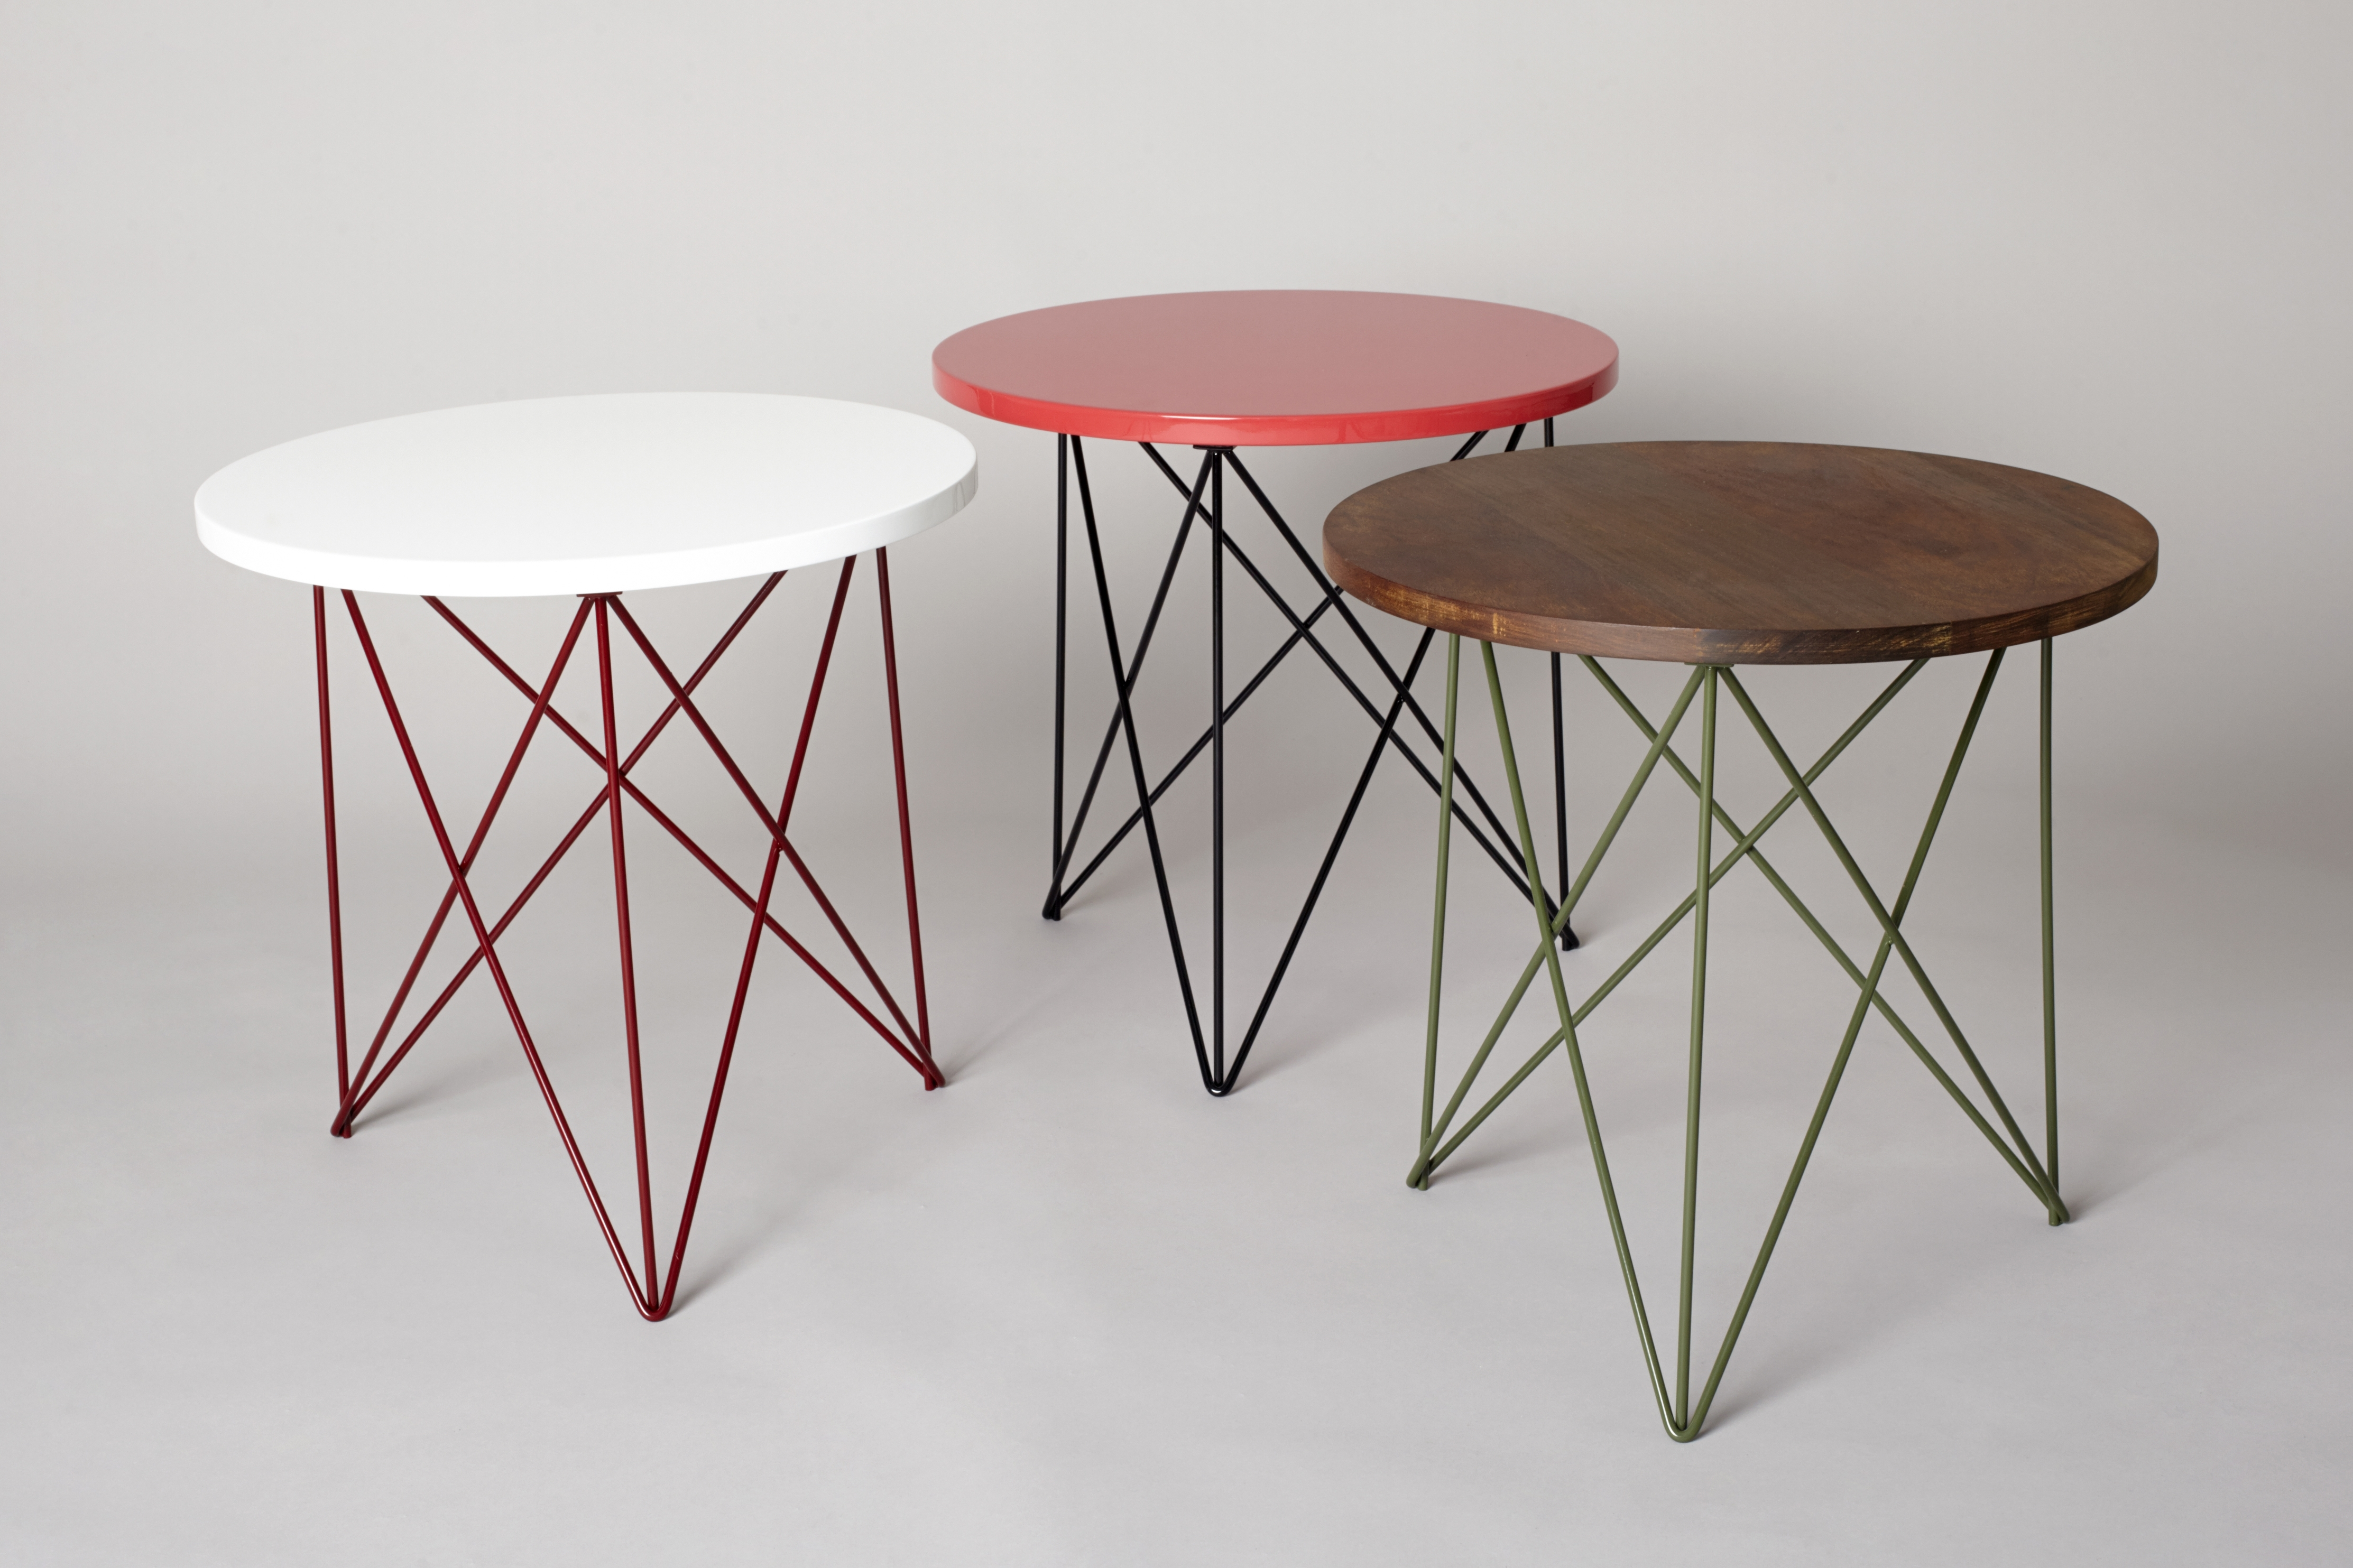 Helms Indoor/outdoor Side Table - Heather Ashton Design for Most Recently Released Helms 6 Piece Rectangle Dining Sets